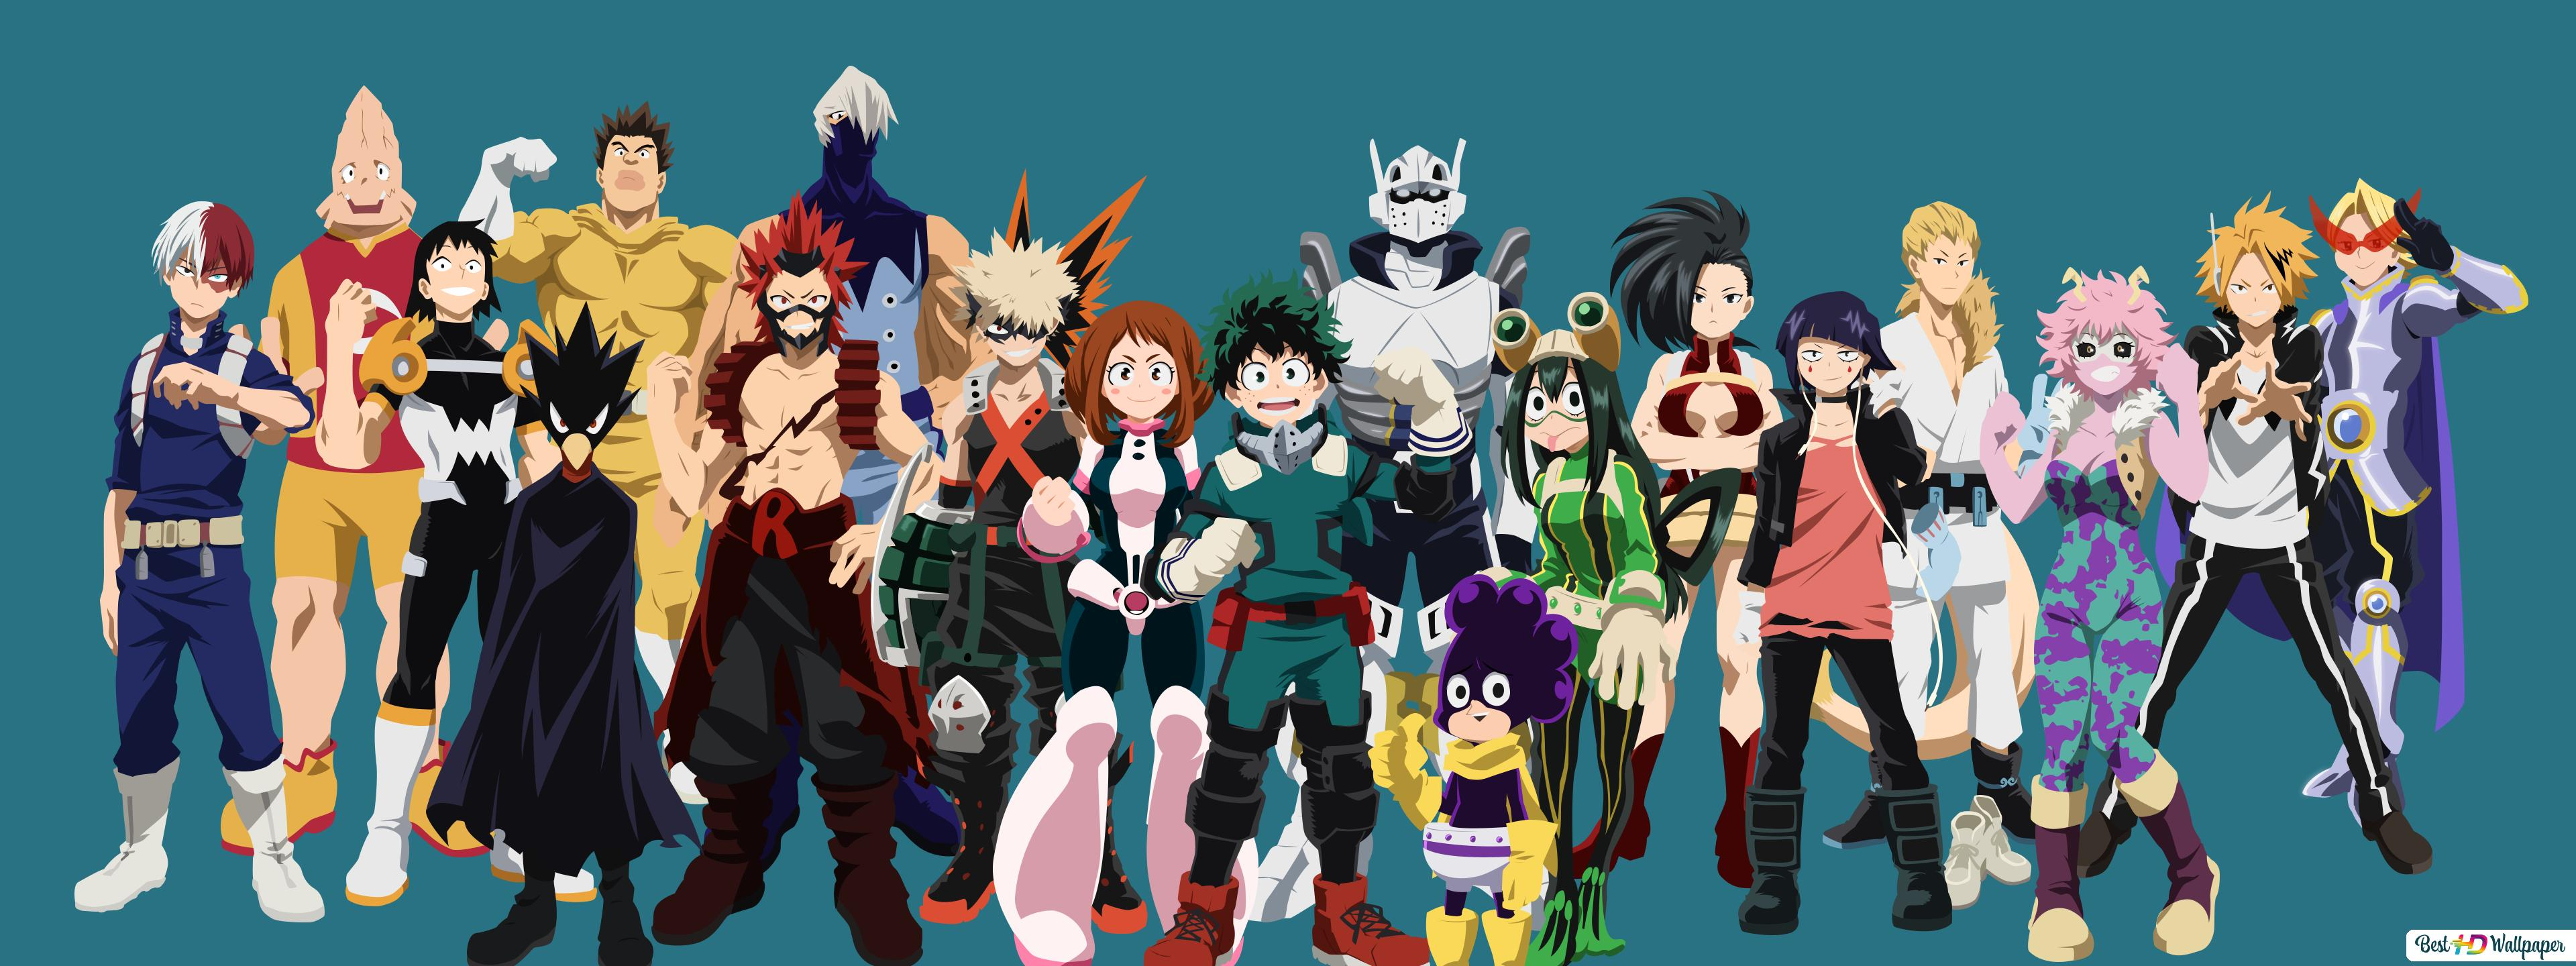 My Hero Academia Class A Hero Costumes Hd Wallpaper Download